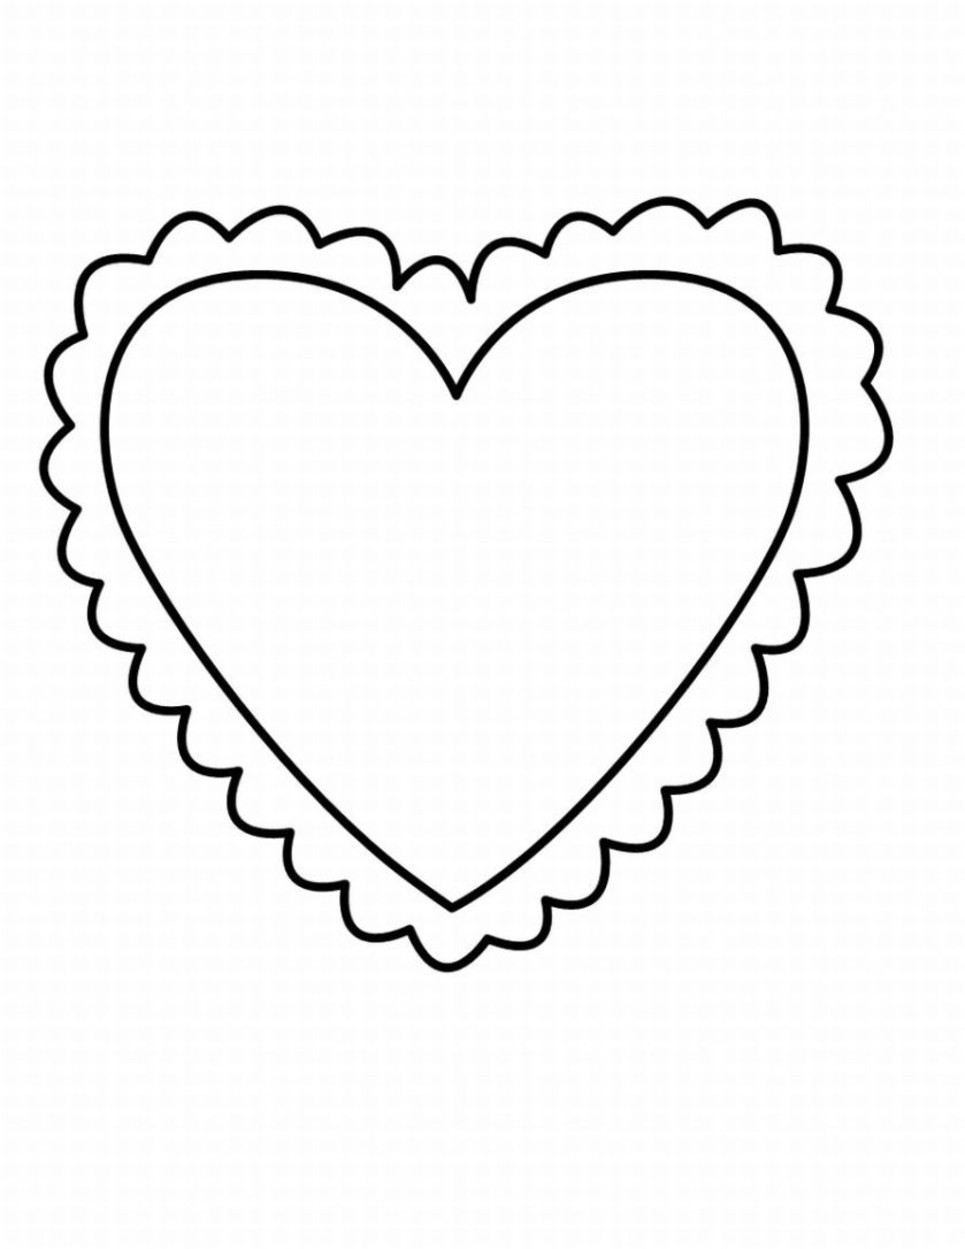 printable hearts coloring pages 35 free printable heart coloring pages pages coloring hearts printable